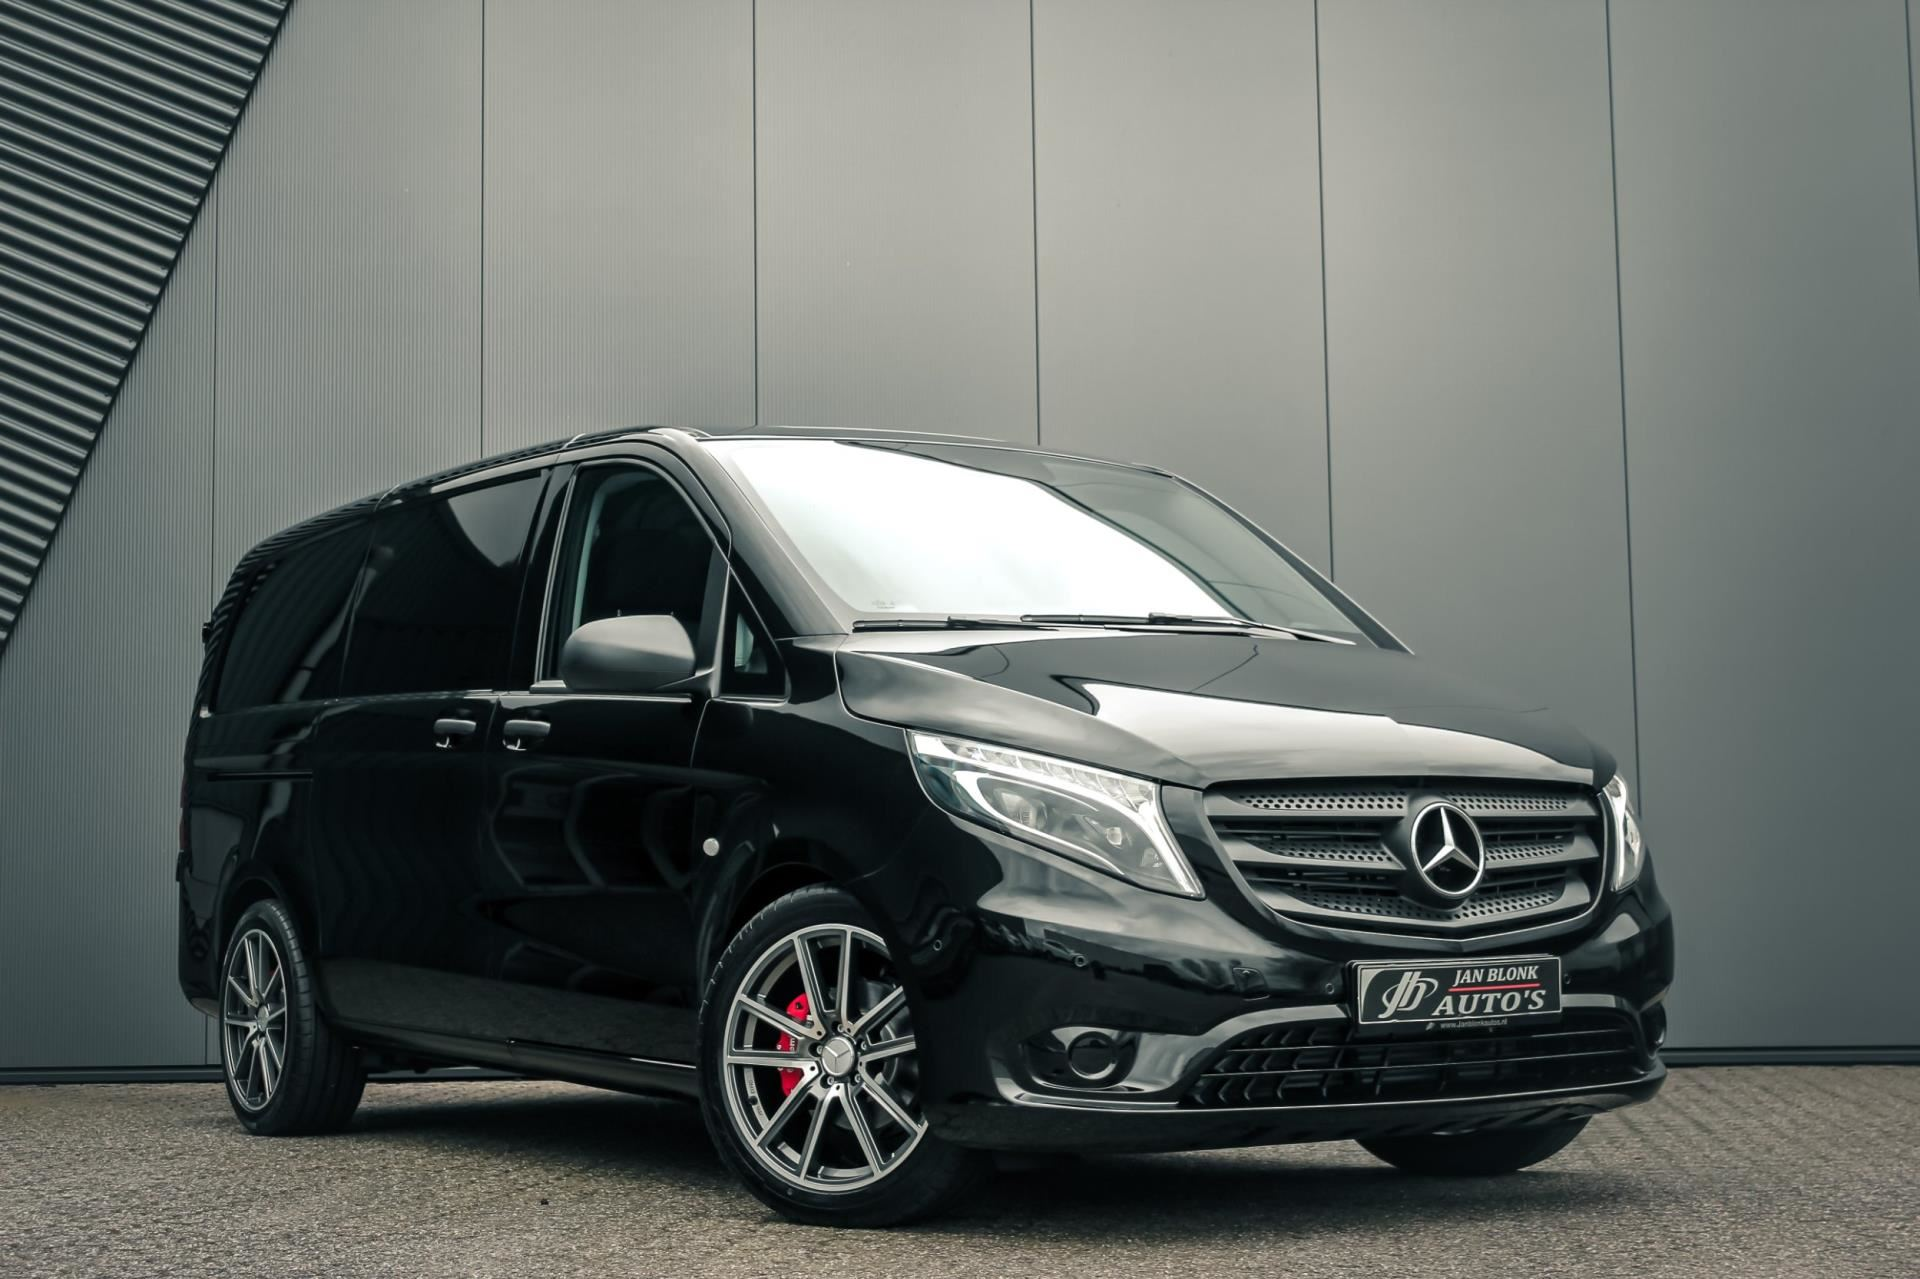 Mercedes-Benz Vito occasion - Jan Blonk Auto's